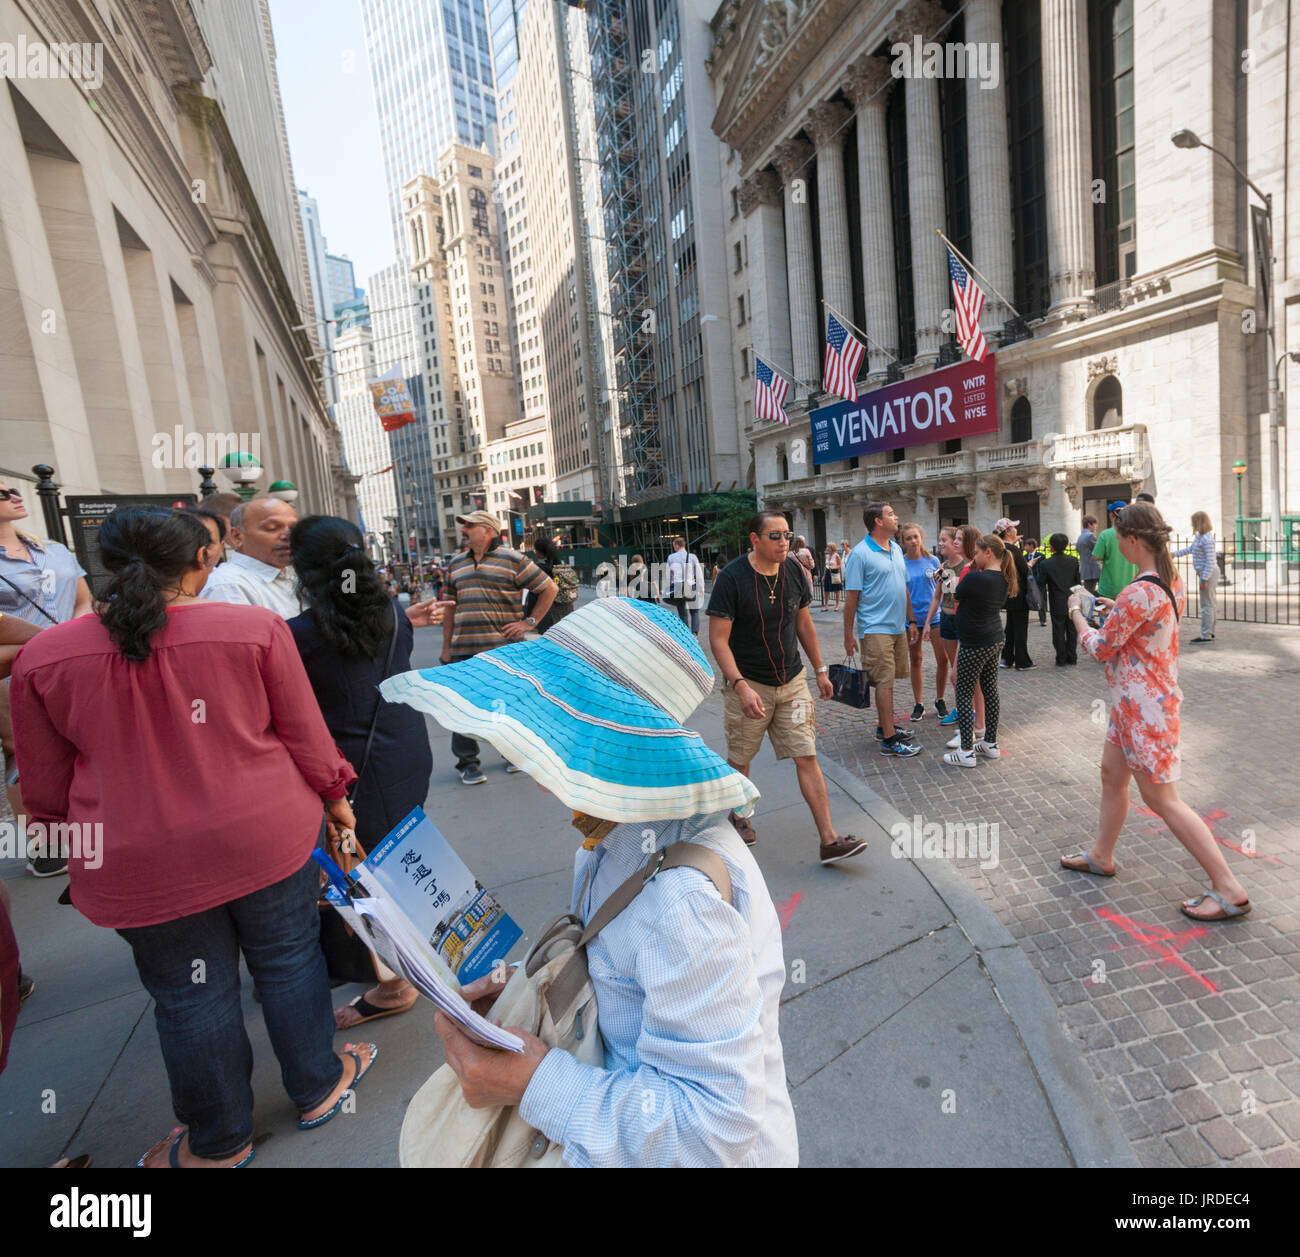 At the fitbit ipo celebration at new york stock exchange on thursday - Hordes Of Tourists Outside The New York Stock Exchange In Lower Manhattan Decorated For The Initial